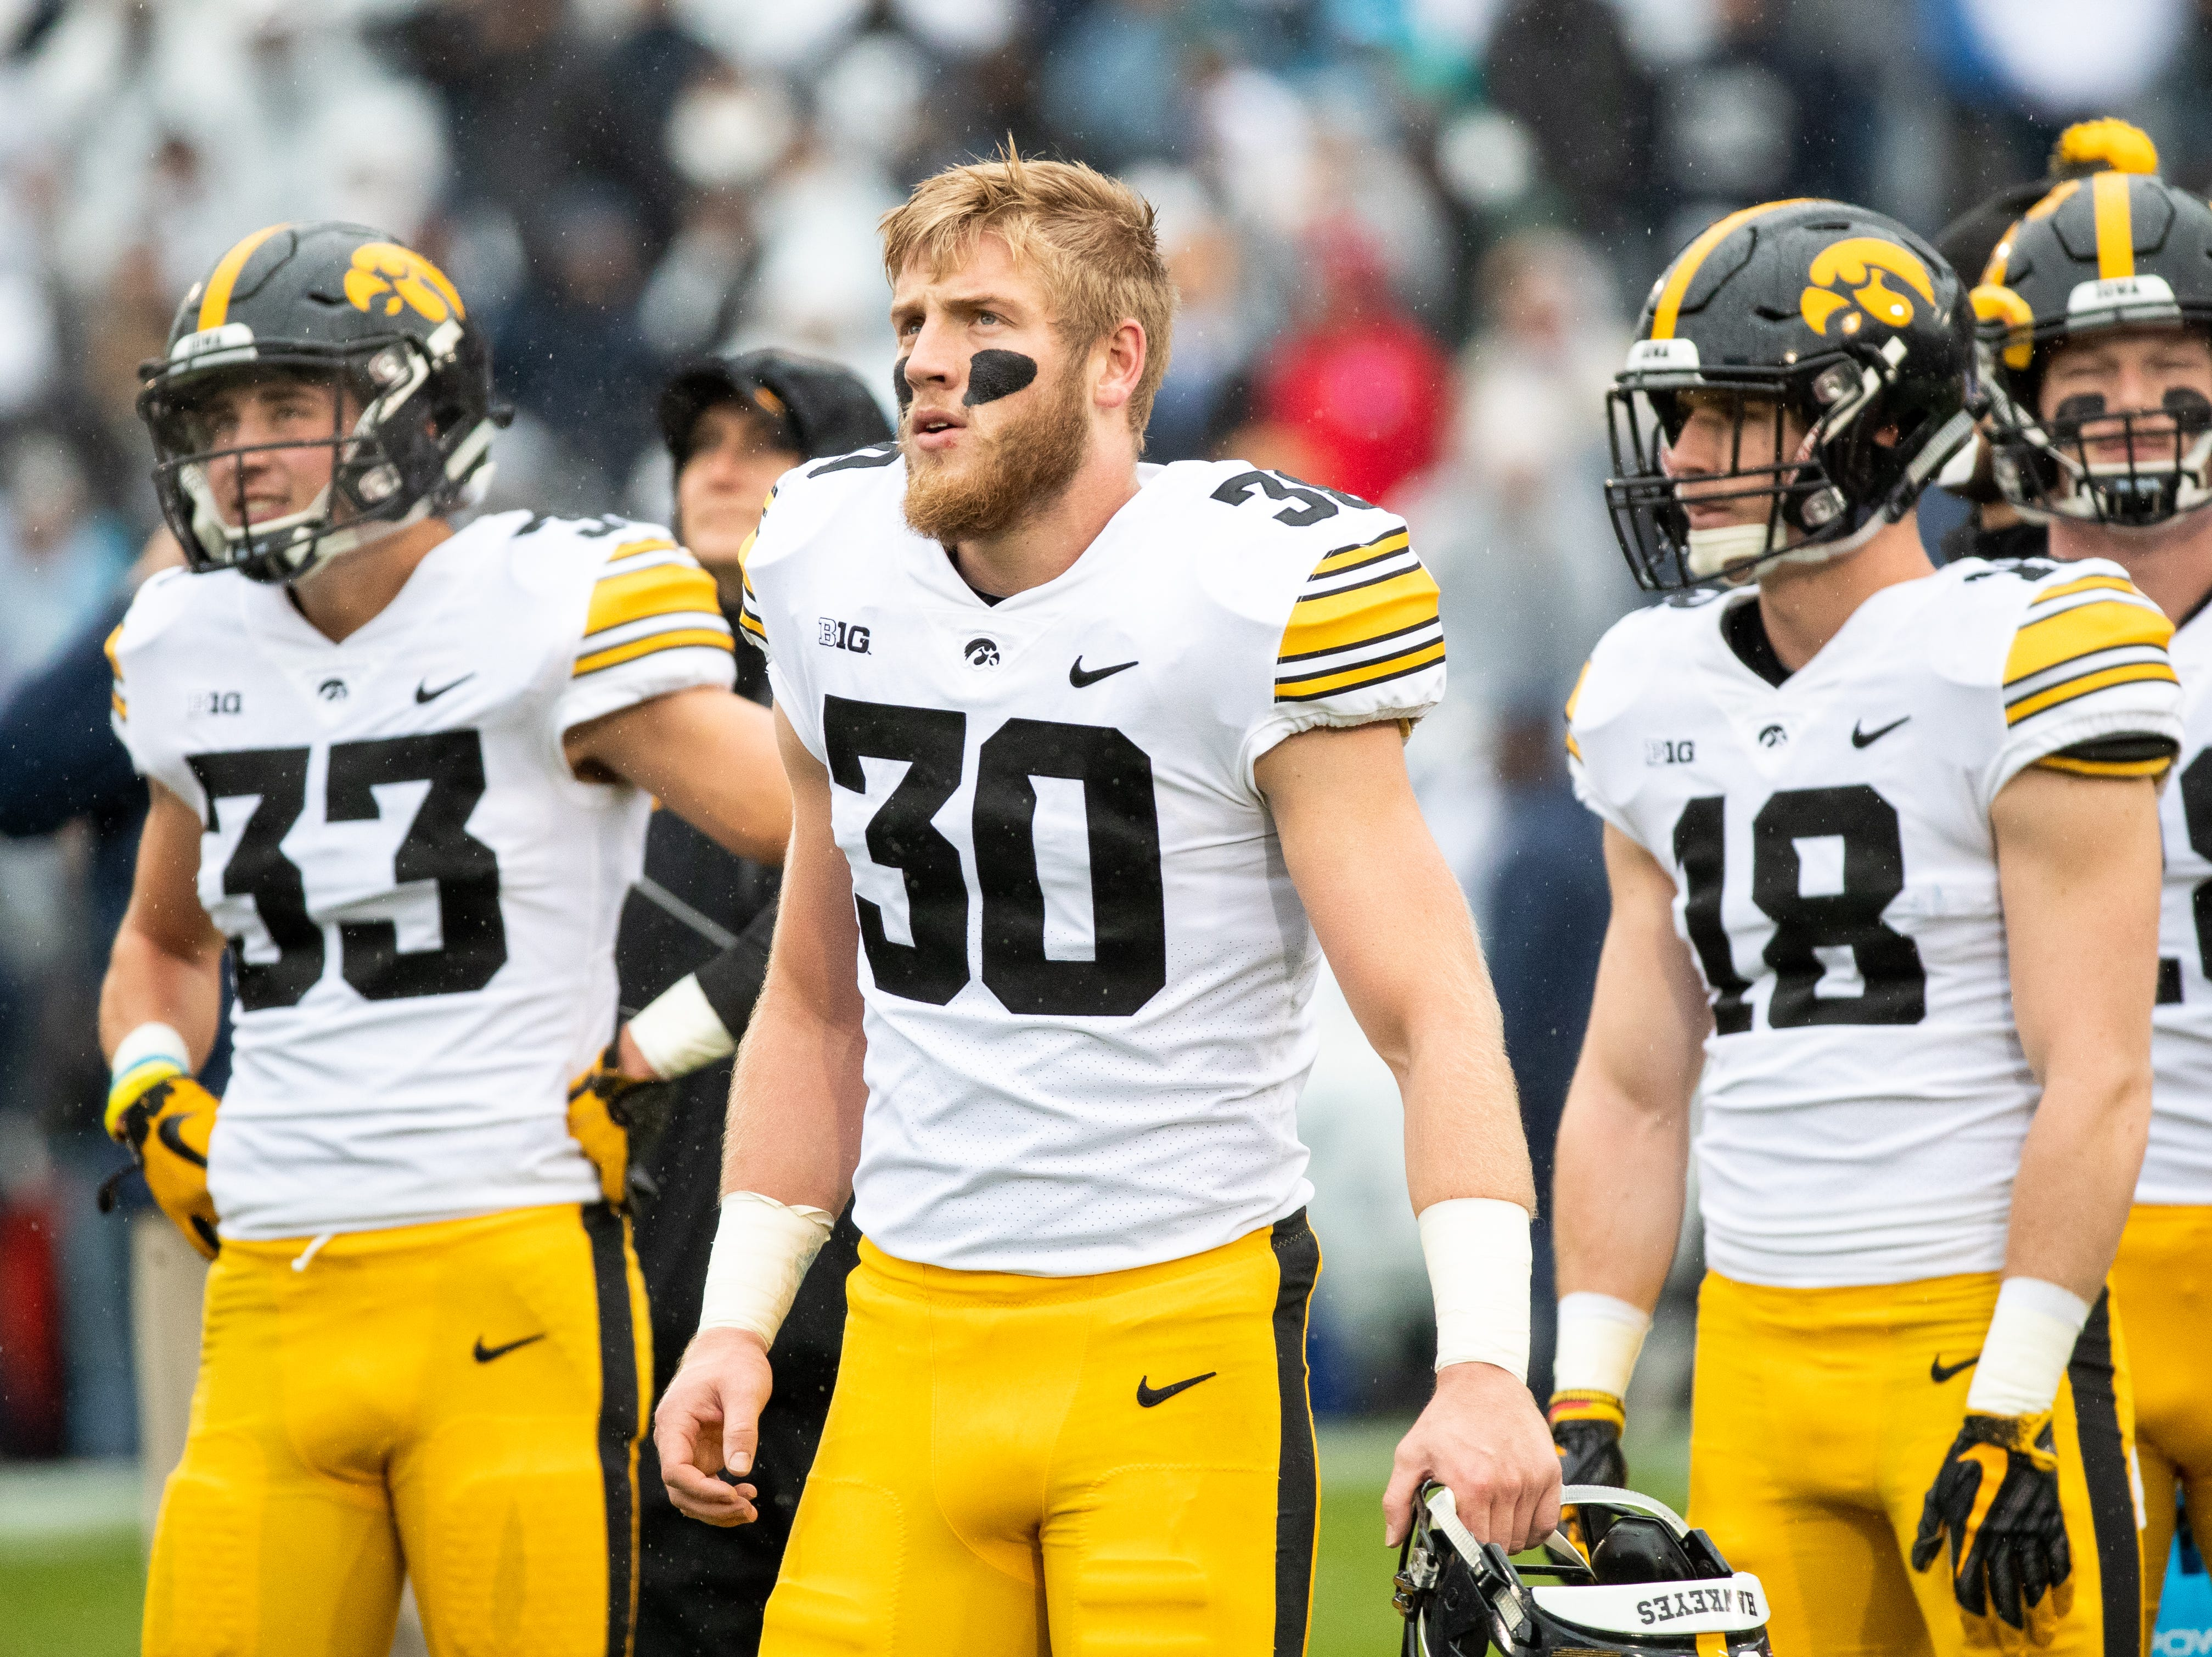 Jake Gervase #30 of the Iowa Hawkeyes before the start of a game against the Penn State Nittany Lions at of Beaver Stadium on Saturday, October 27, 2018, in State College, Pennsylvania.at of Beaver Stadium on Saturday, October 27, 2018, in State College, Pennsylvania.